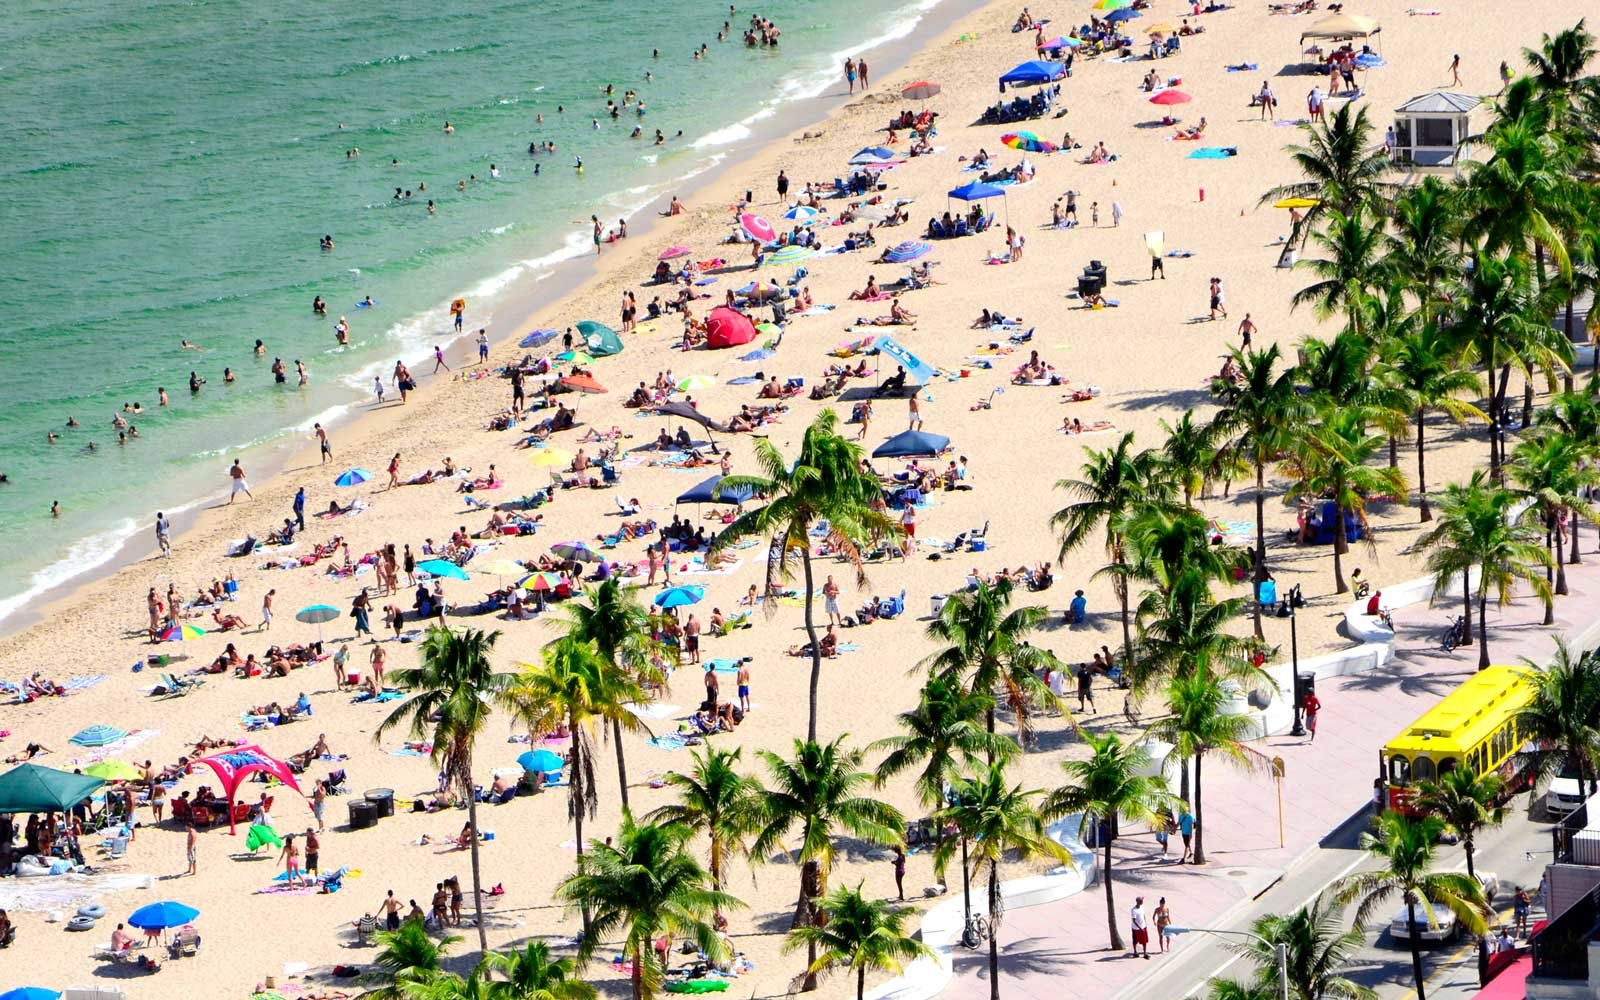 Overhead view of sunbathers lining the beach to soak up the sun and fun at Fort Lauderdale Beach